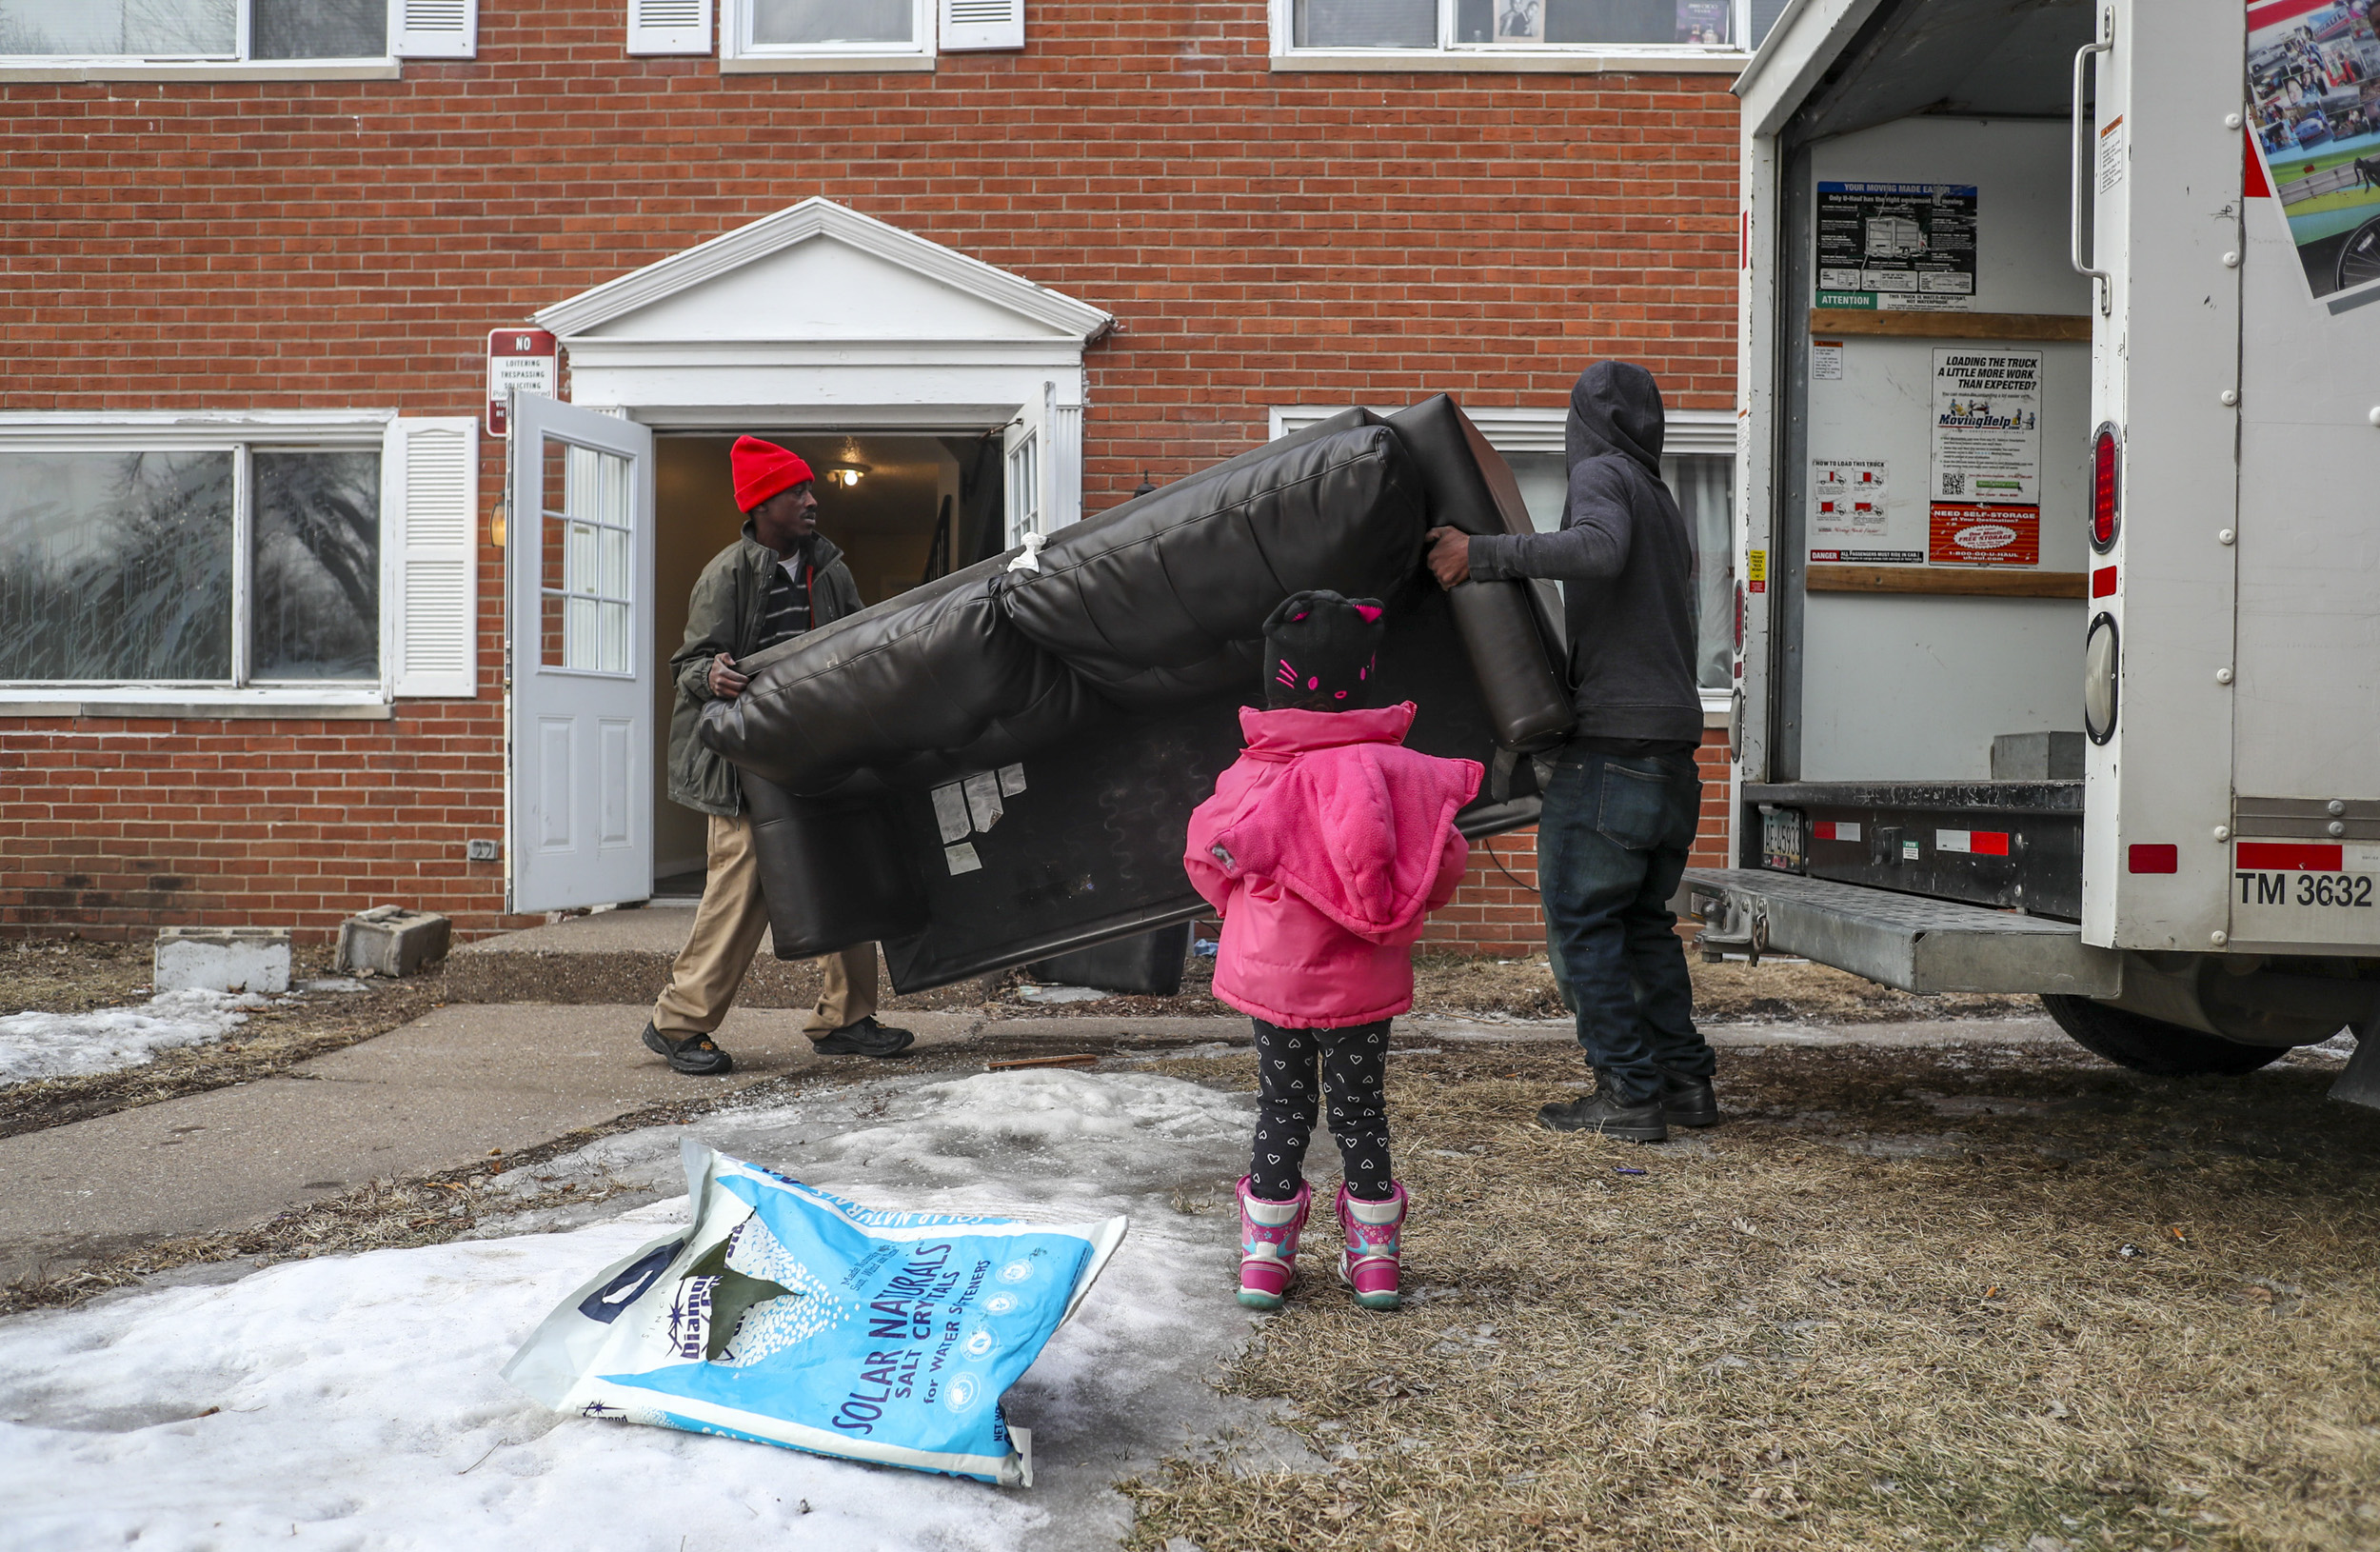 A young girl stands by as Terrill, left, and Andrew Thomas move a sofa into a rental truck in Davenport, Thursday, March 7, 2019. The building Terrill Thomas lived in with his wife and two children was shuttered by the city of Davenport on Friday, March 8.